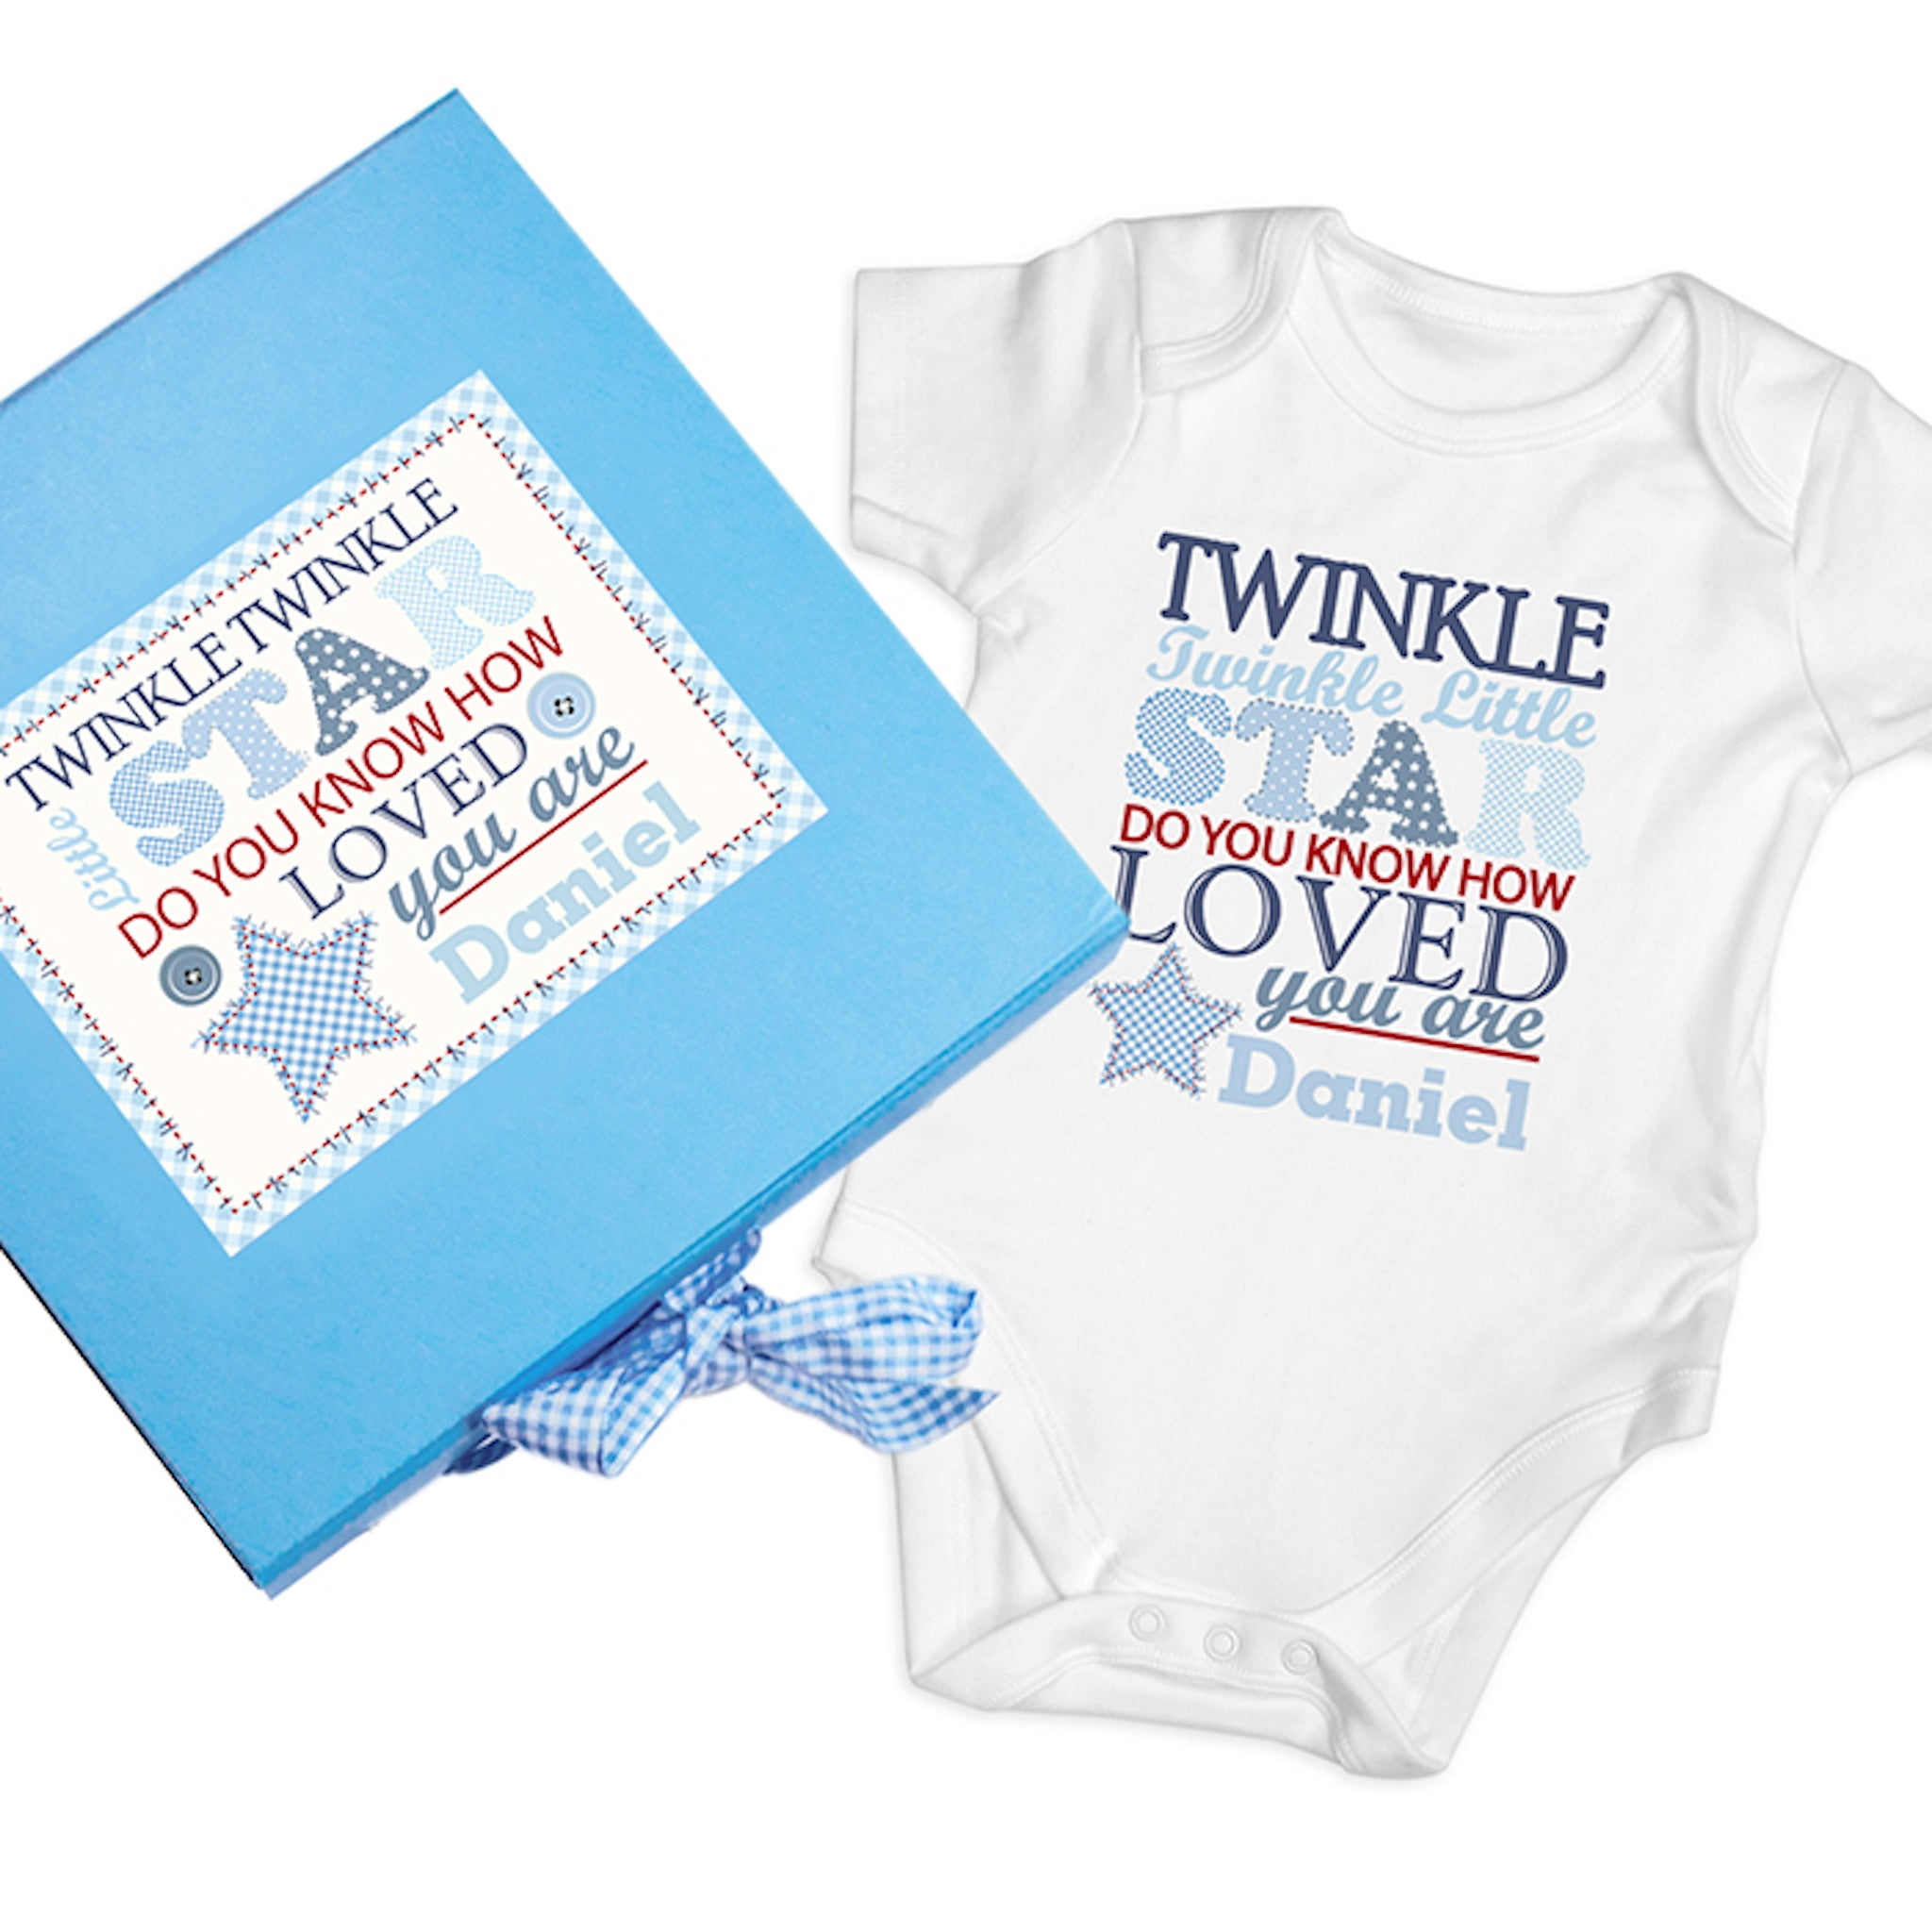 Baby boy gift boxes baby boy gift hampers baby boy shower gifts twinkle twinkle baby boy gift set personalised baby gift negle Image collections